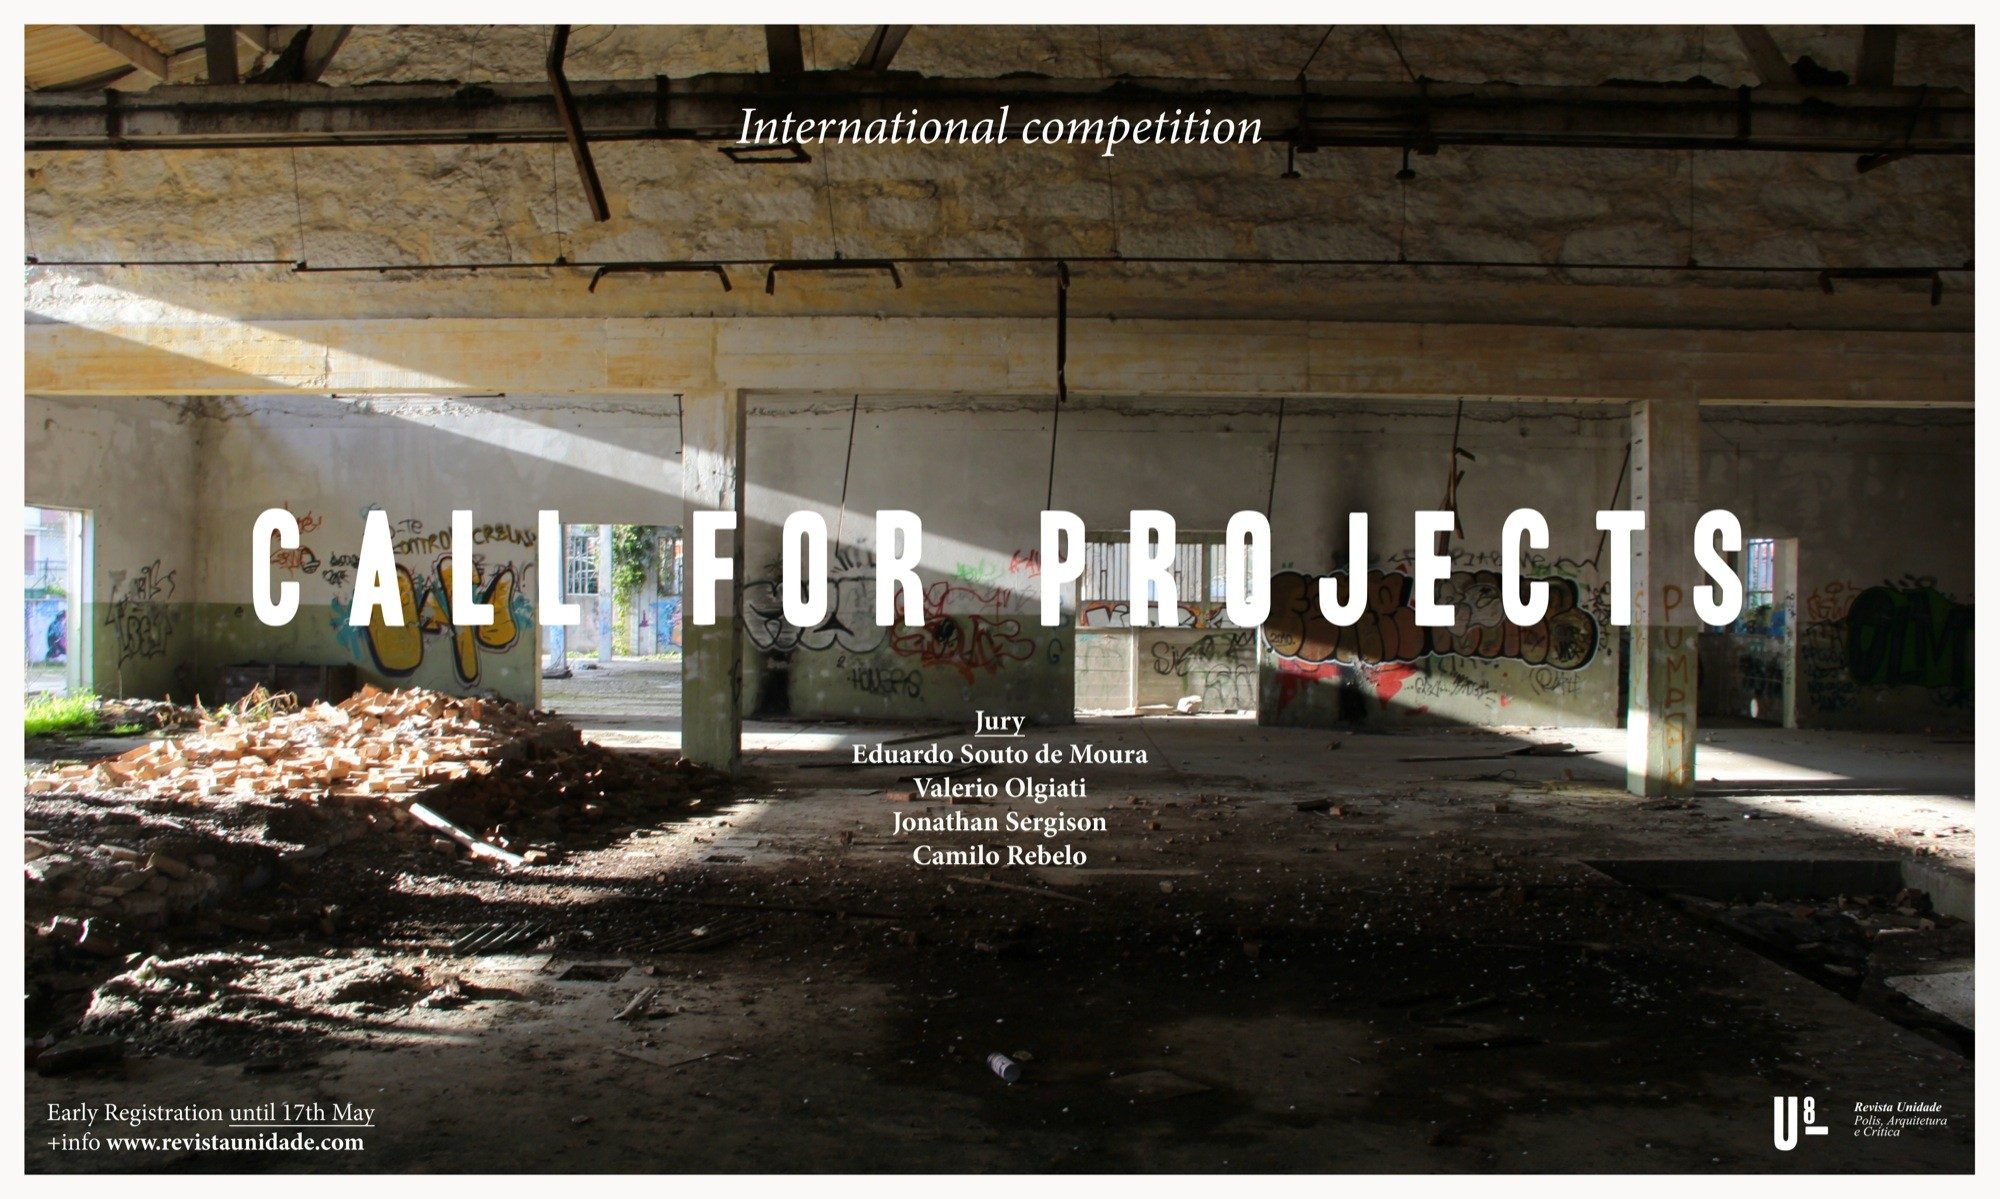 U8 International Competition: The Unknown Porto